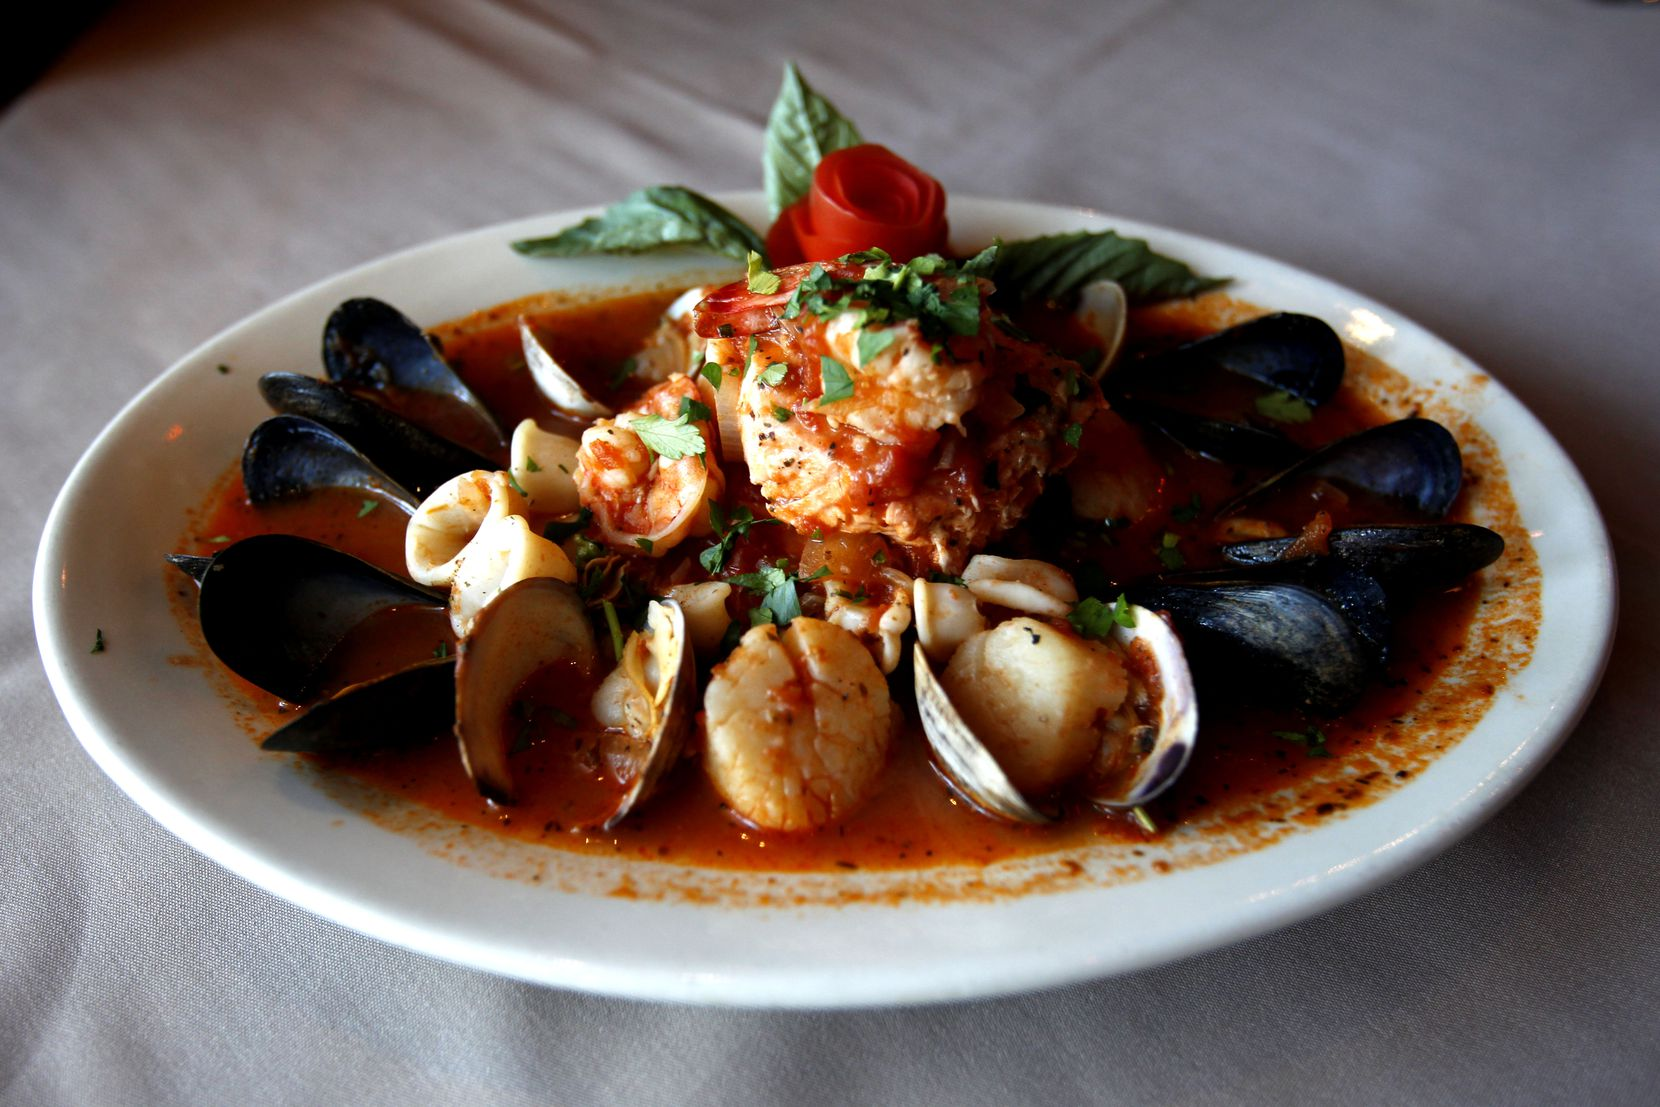 The Cioppino dish at Ruggeri's